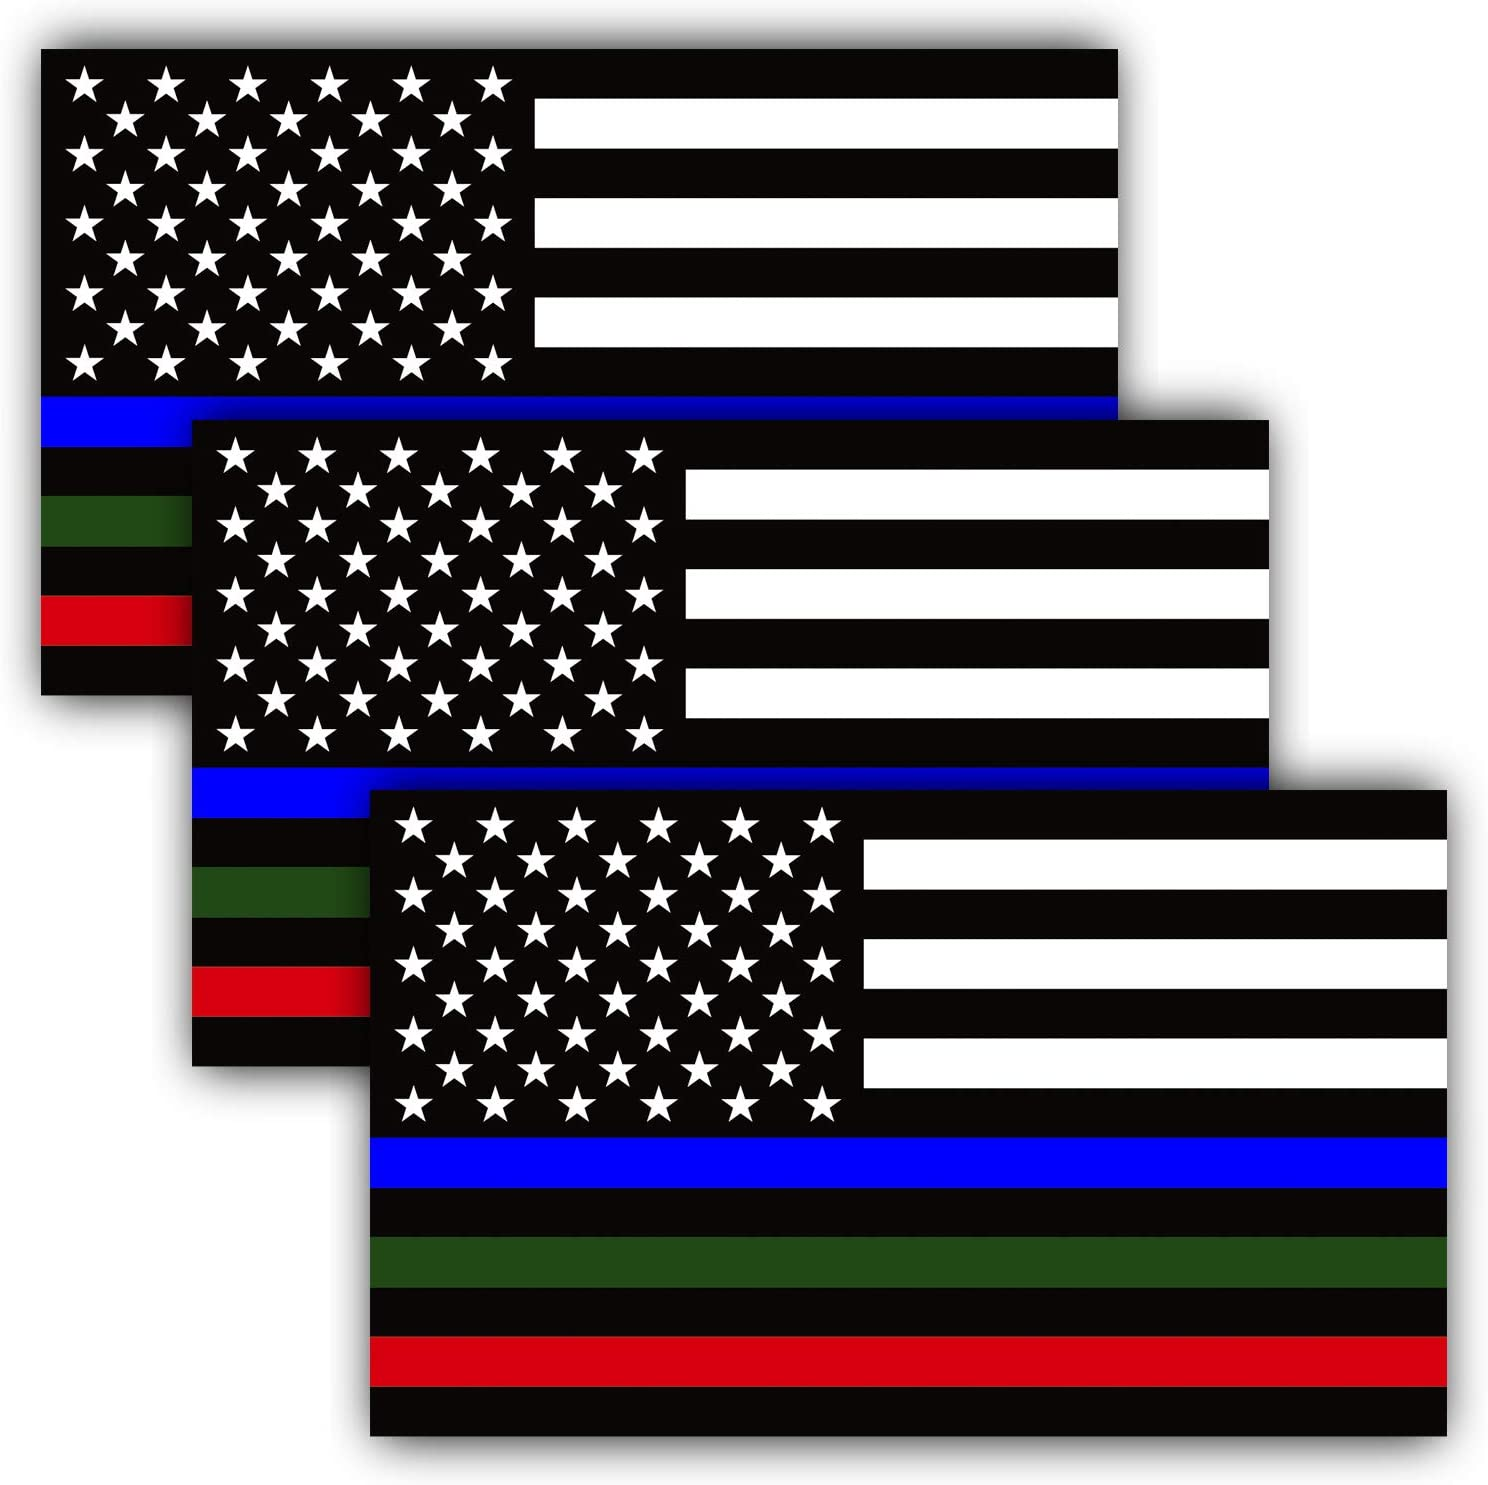 Anley 5 X 3 inch Thin Line US Flag Decal - Blue Green and Red Reflective Stripe American Flag Car Stickers - Support Police Military and Fire Officers (3 Pack)